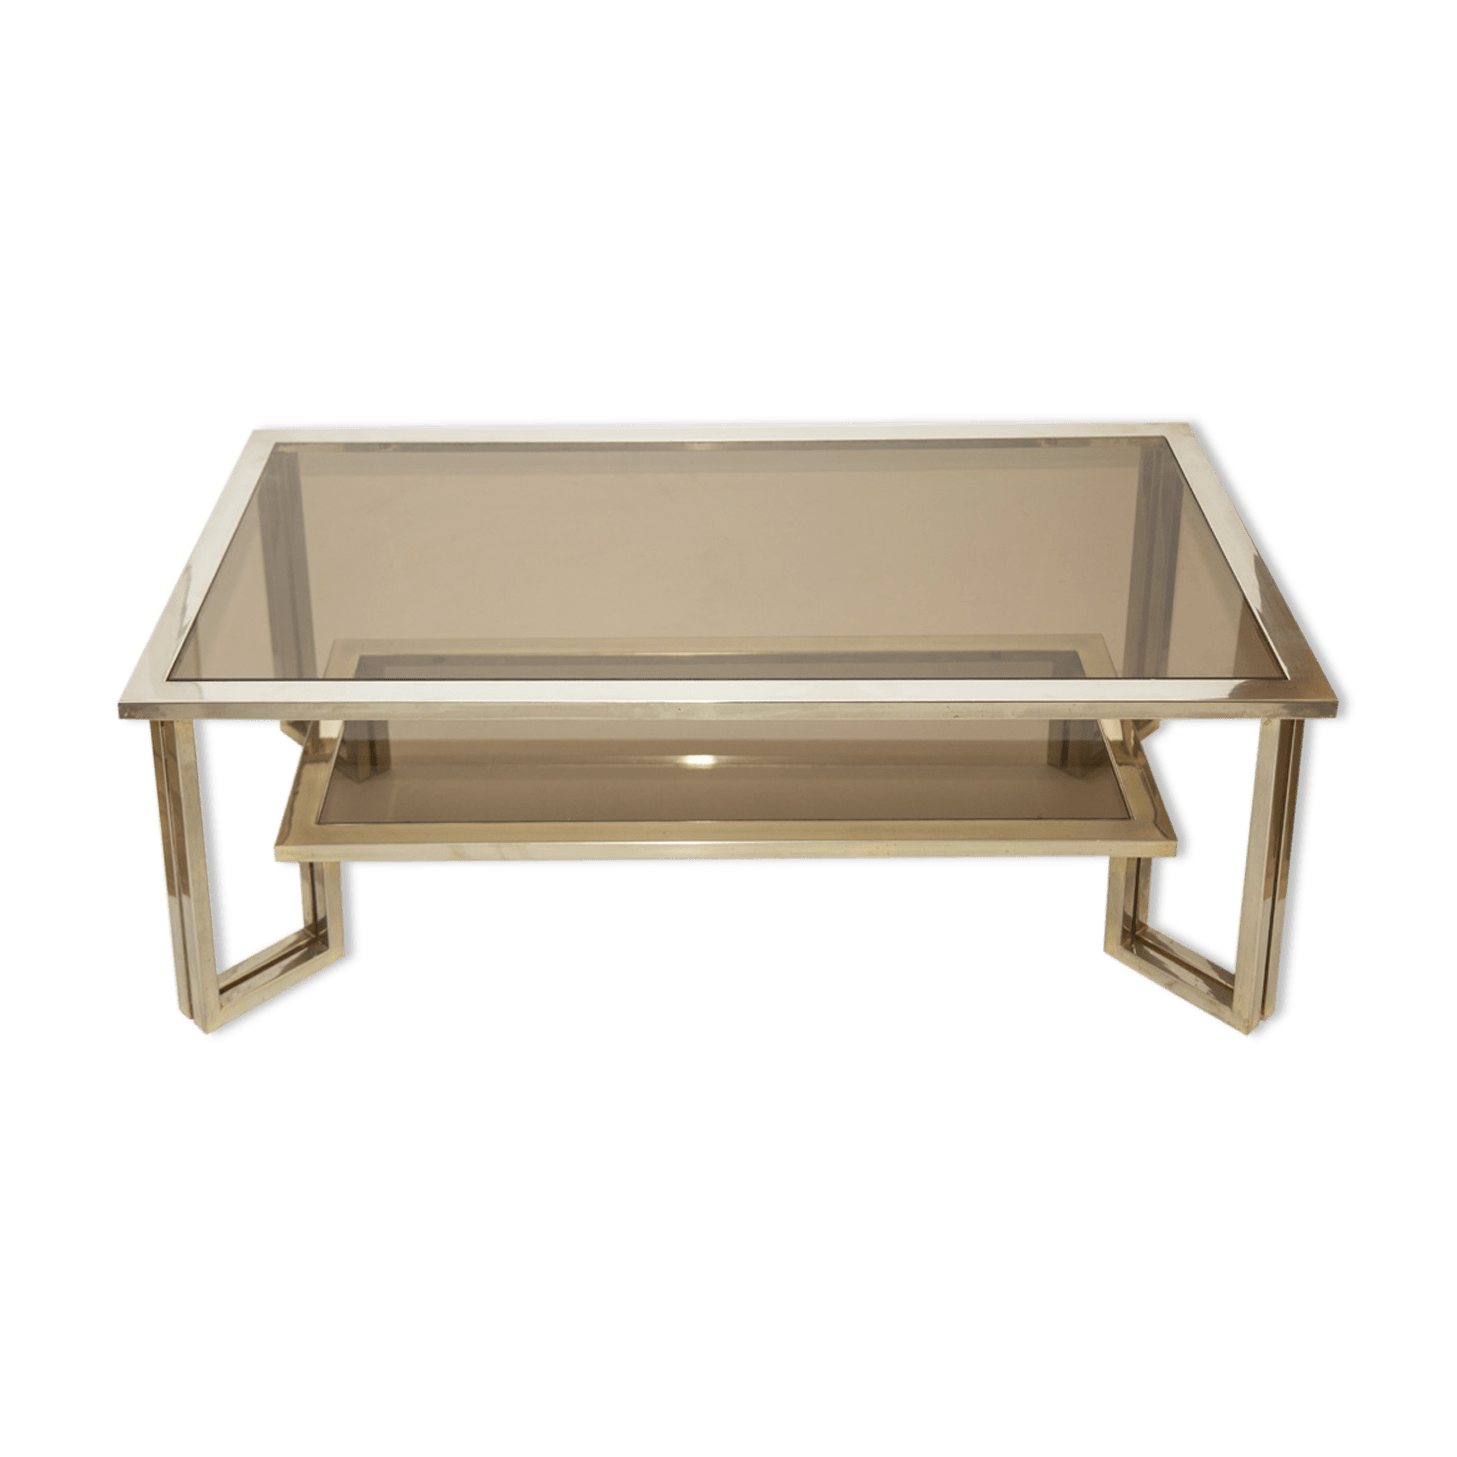 Le Bon Coin Tables Basses De Salon Table Basse Roche Bobois Occasion Table Basse Le Bon Coin